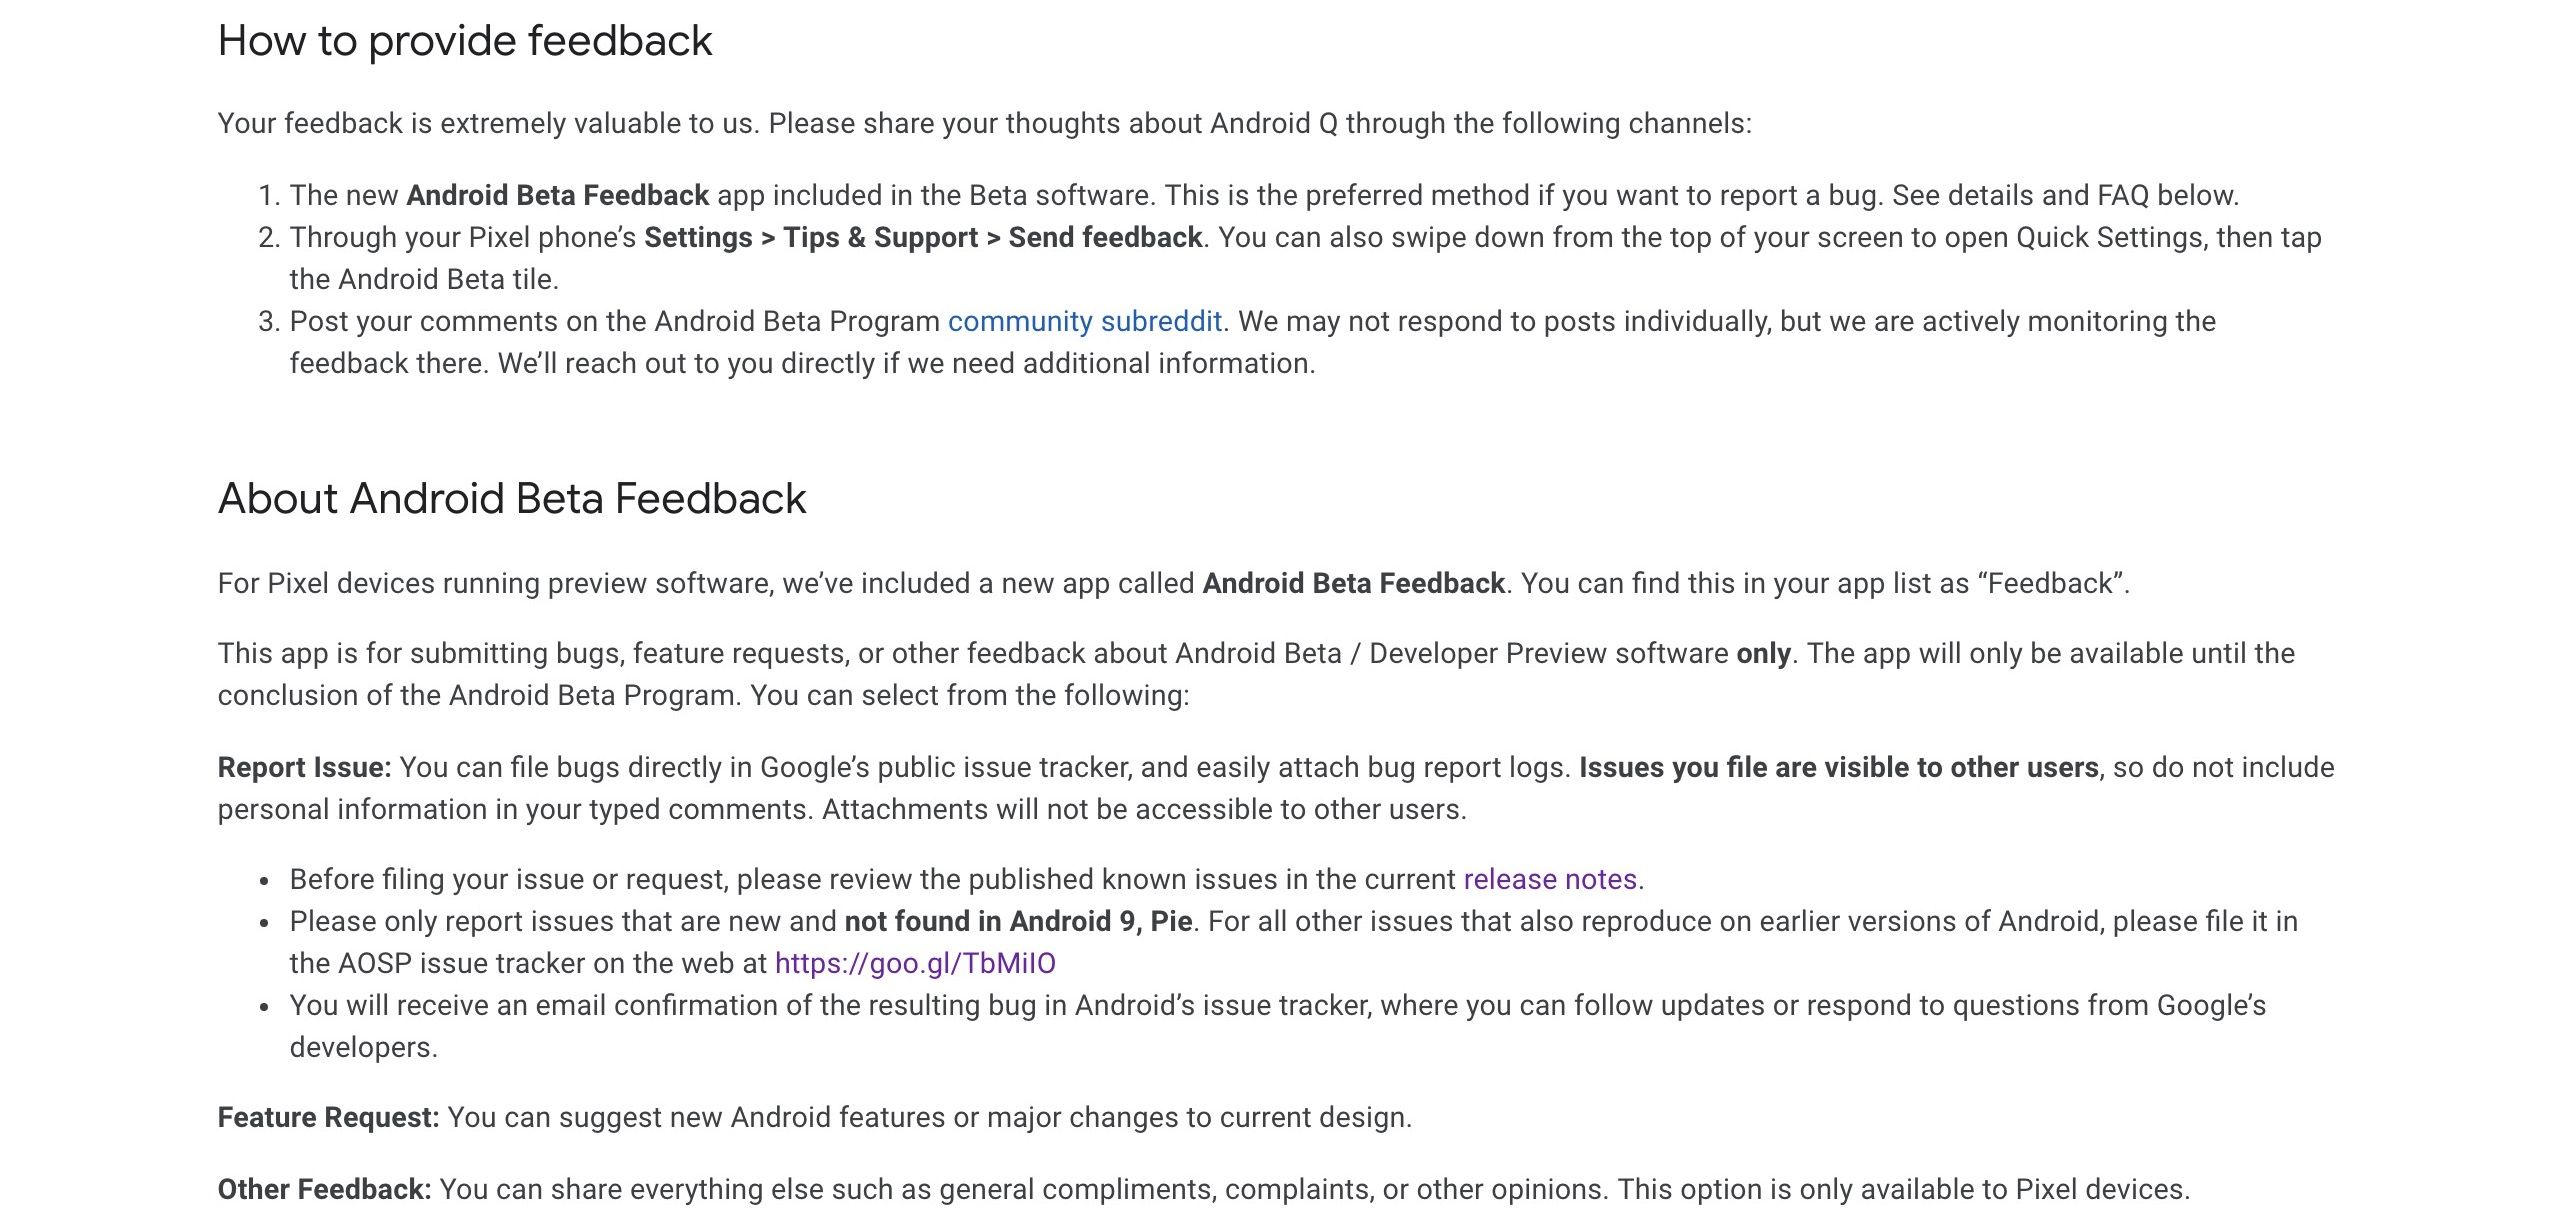 Android Beta Feedback app